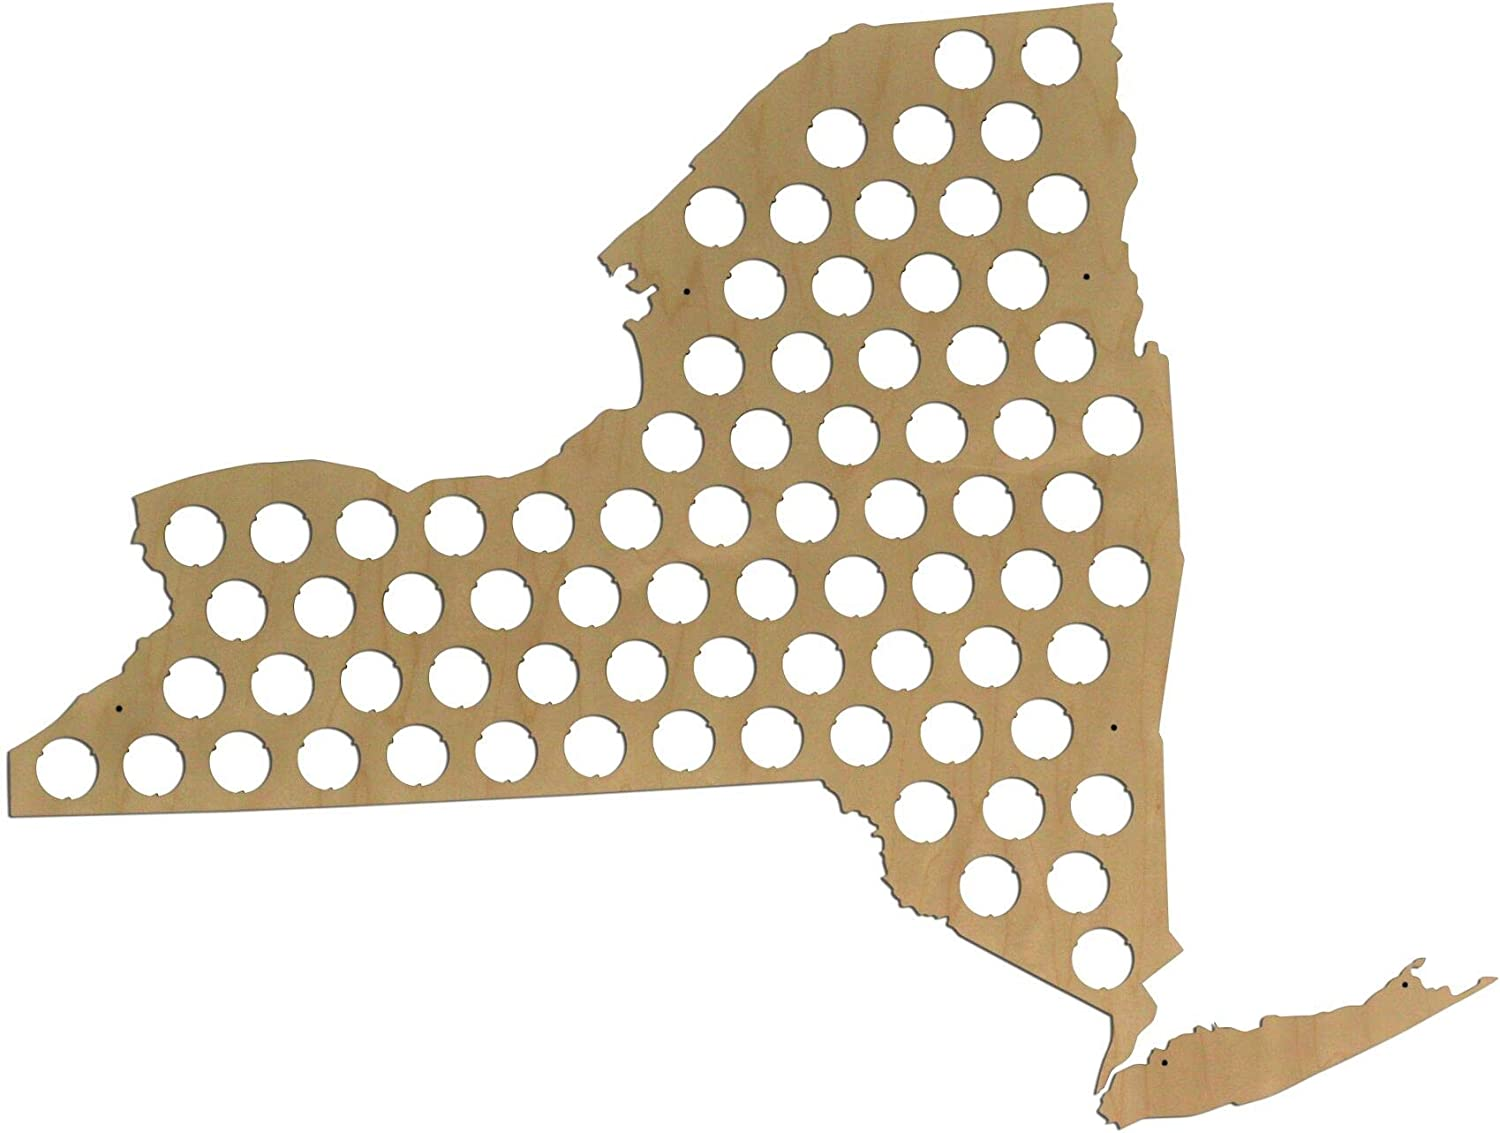 All 50 States Beer Cap Map - New York Beer Cap Map NY - Glossy Wood - Skyline Workshop - Great Christmas gift!